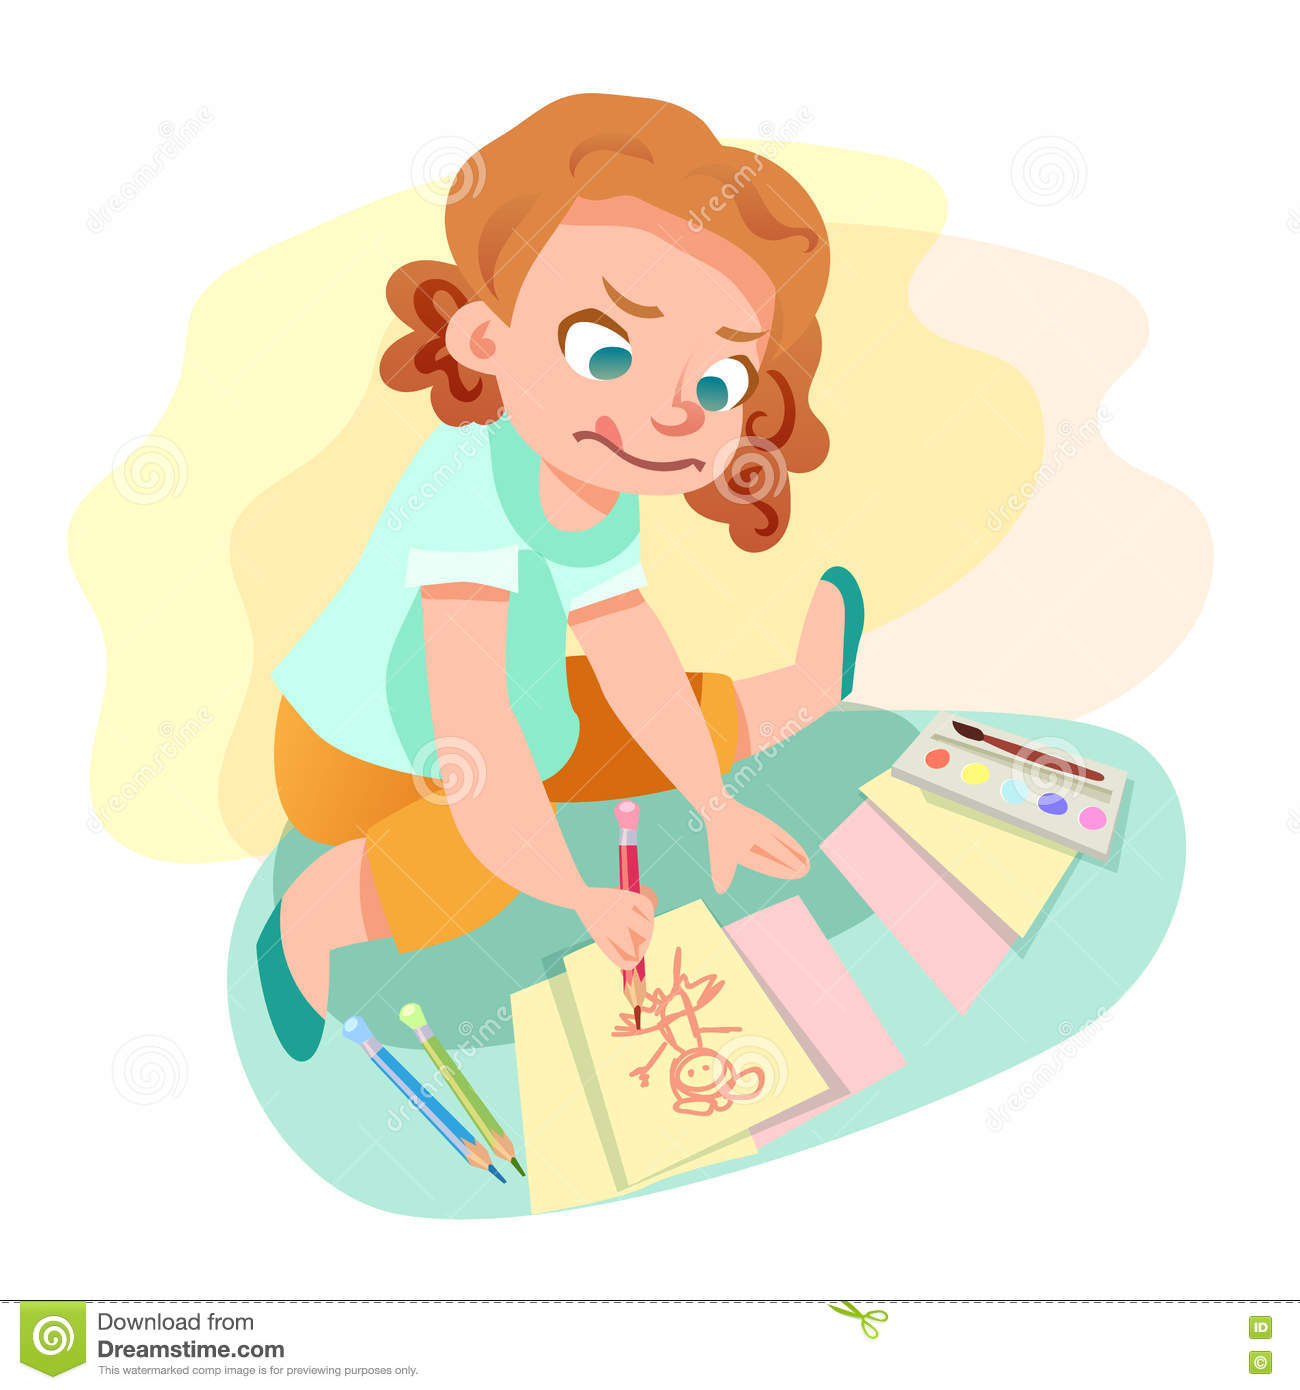 Girl Drawing On Paper Illustration Stock Vector - Illustration of ...